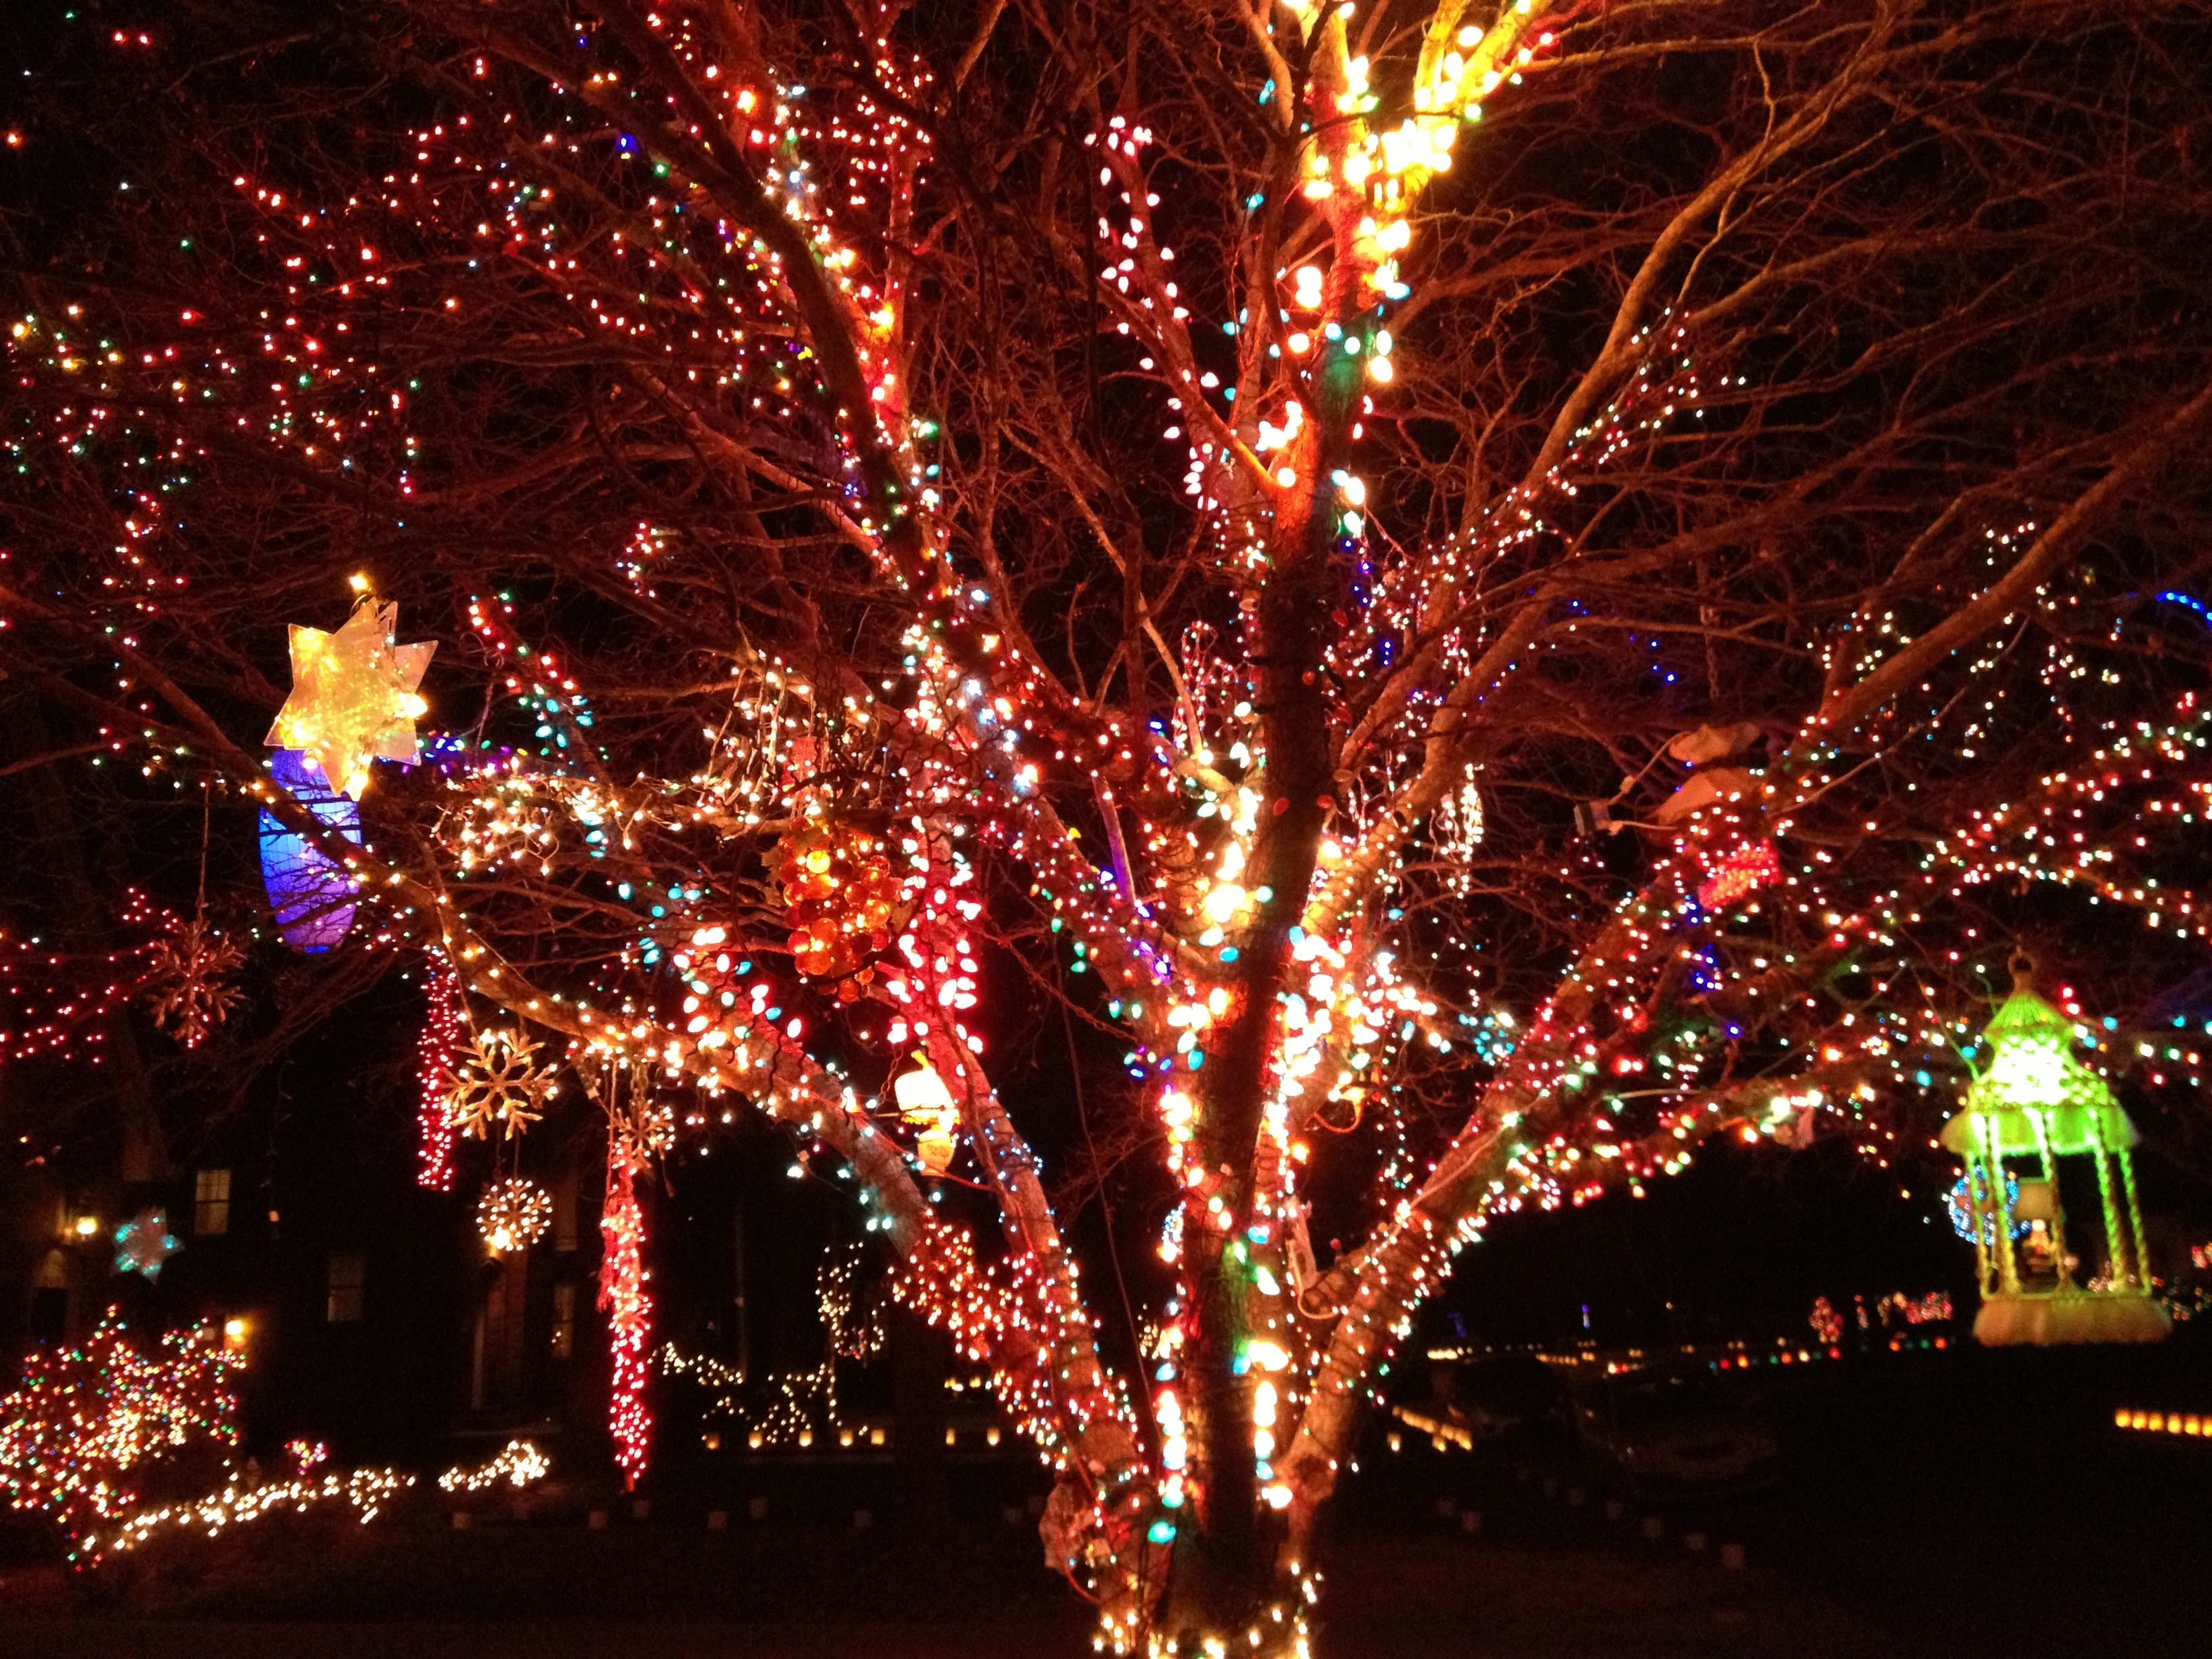 Christmas Lights In Wichita Ks.Outdoor Christmas Tree In Wichita Ks With Hanging Swag Lamps